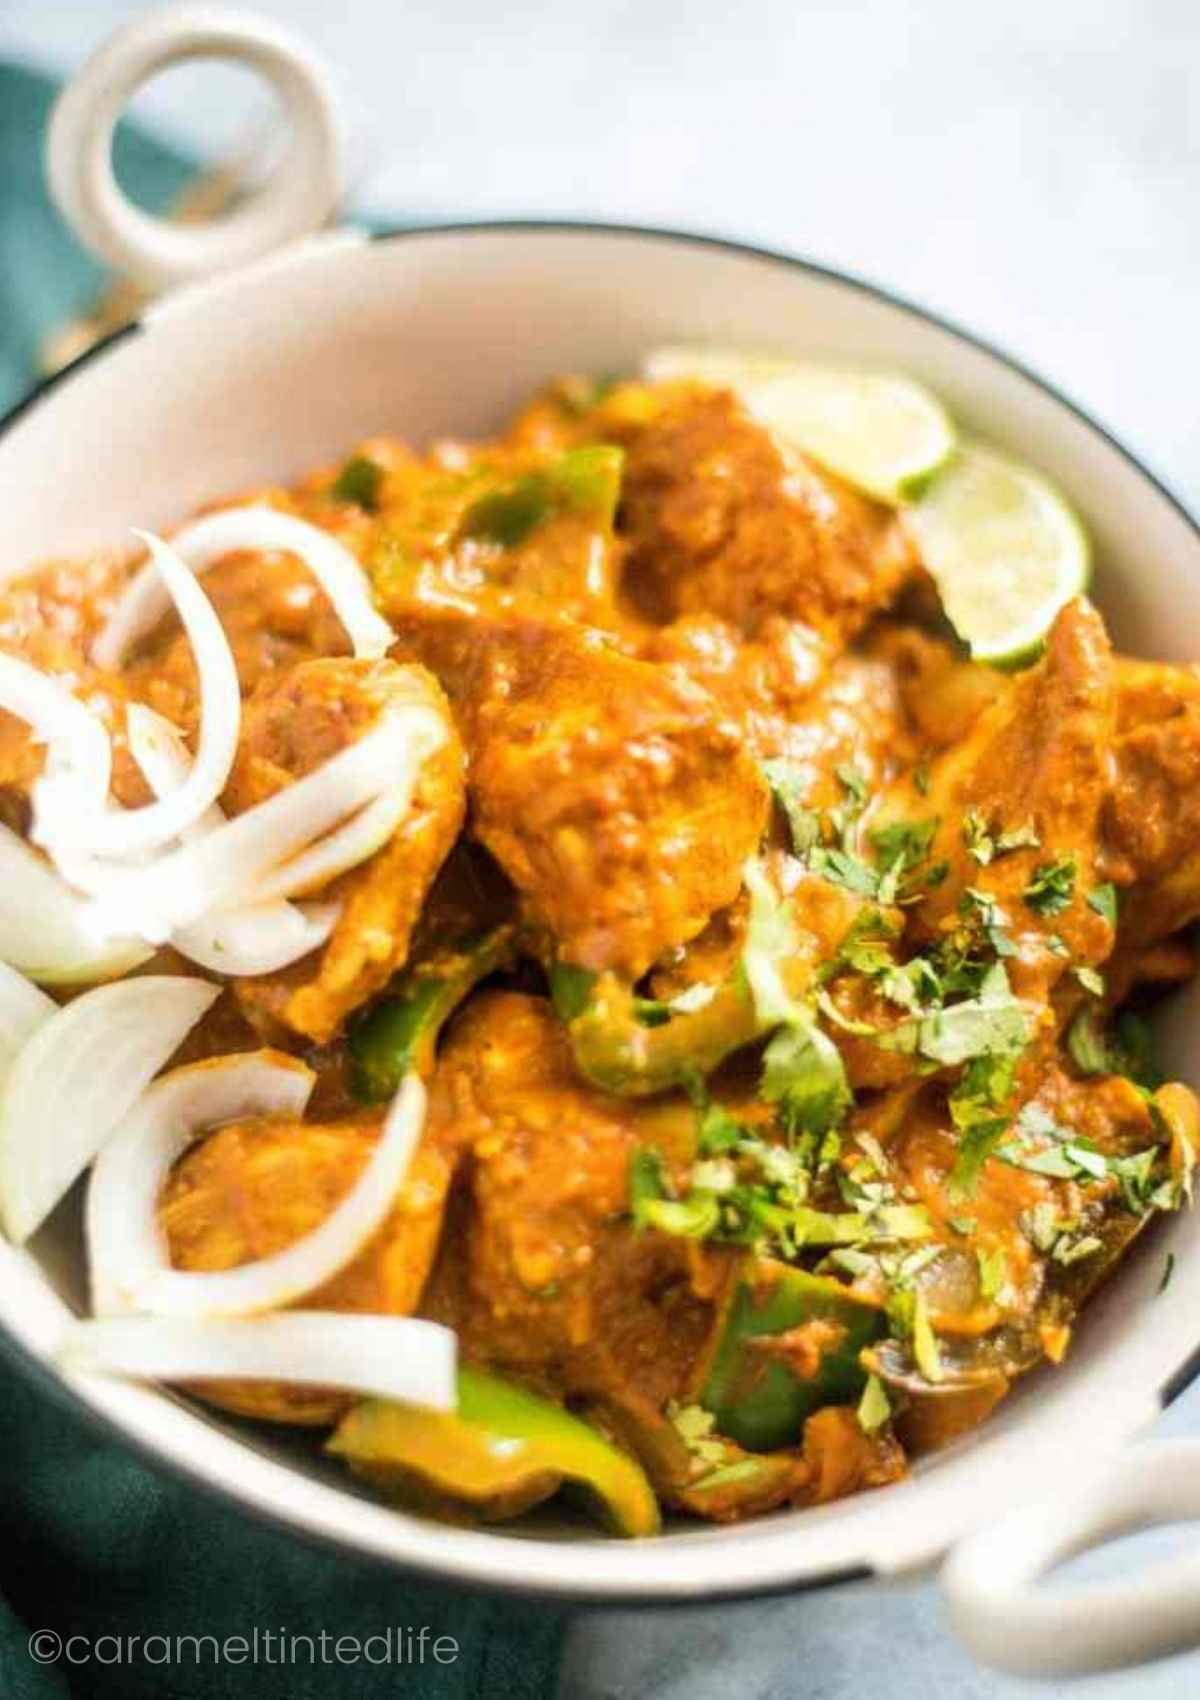 Kadai Chicken served in a bowl with rice